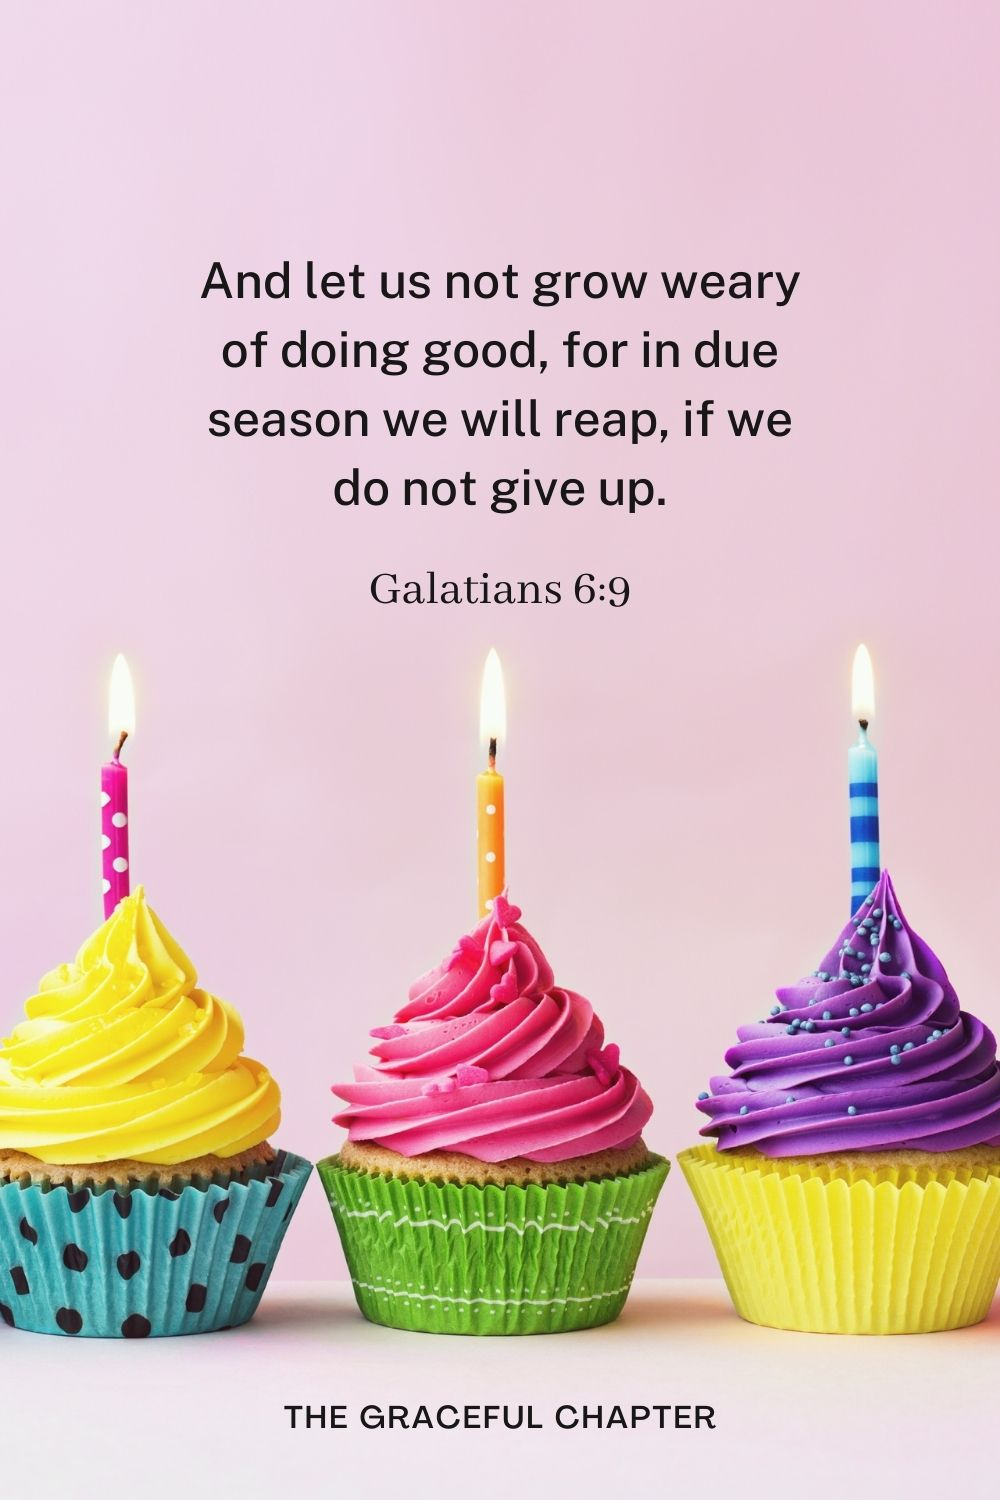 And let us not grow weary of doing good, for in due season we will reap, if we do not give up. Galatians 6:9